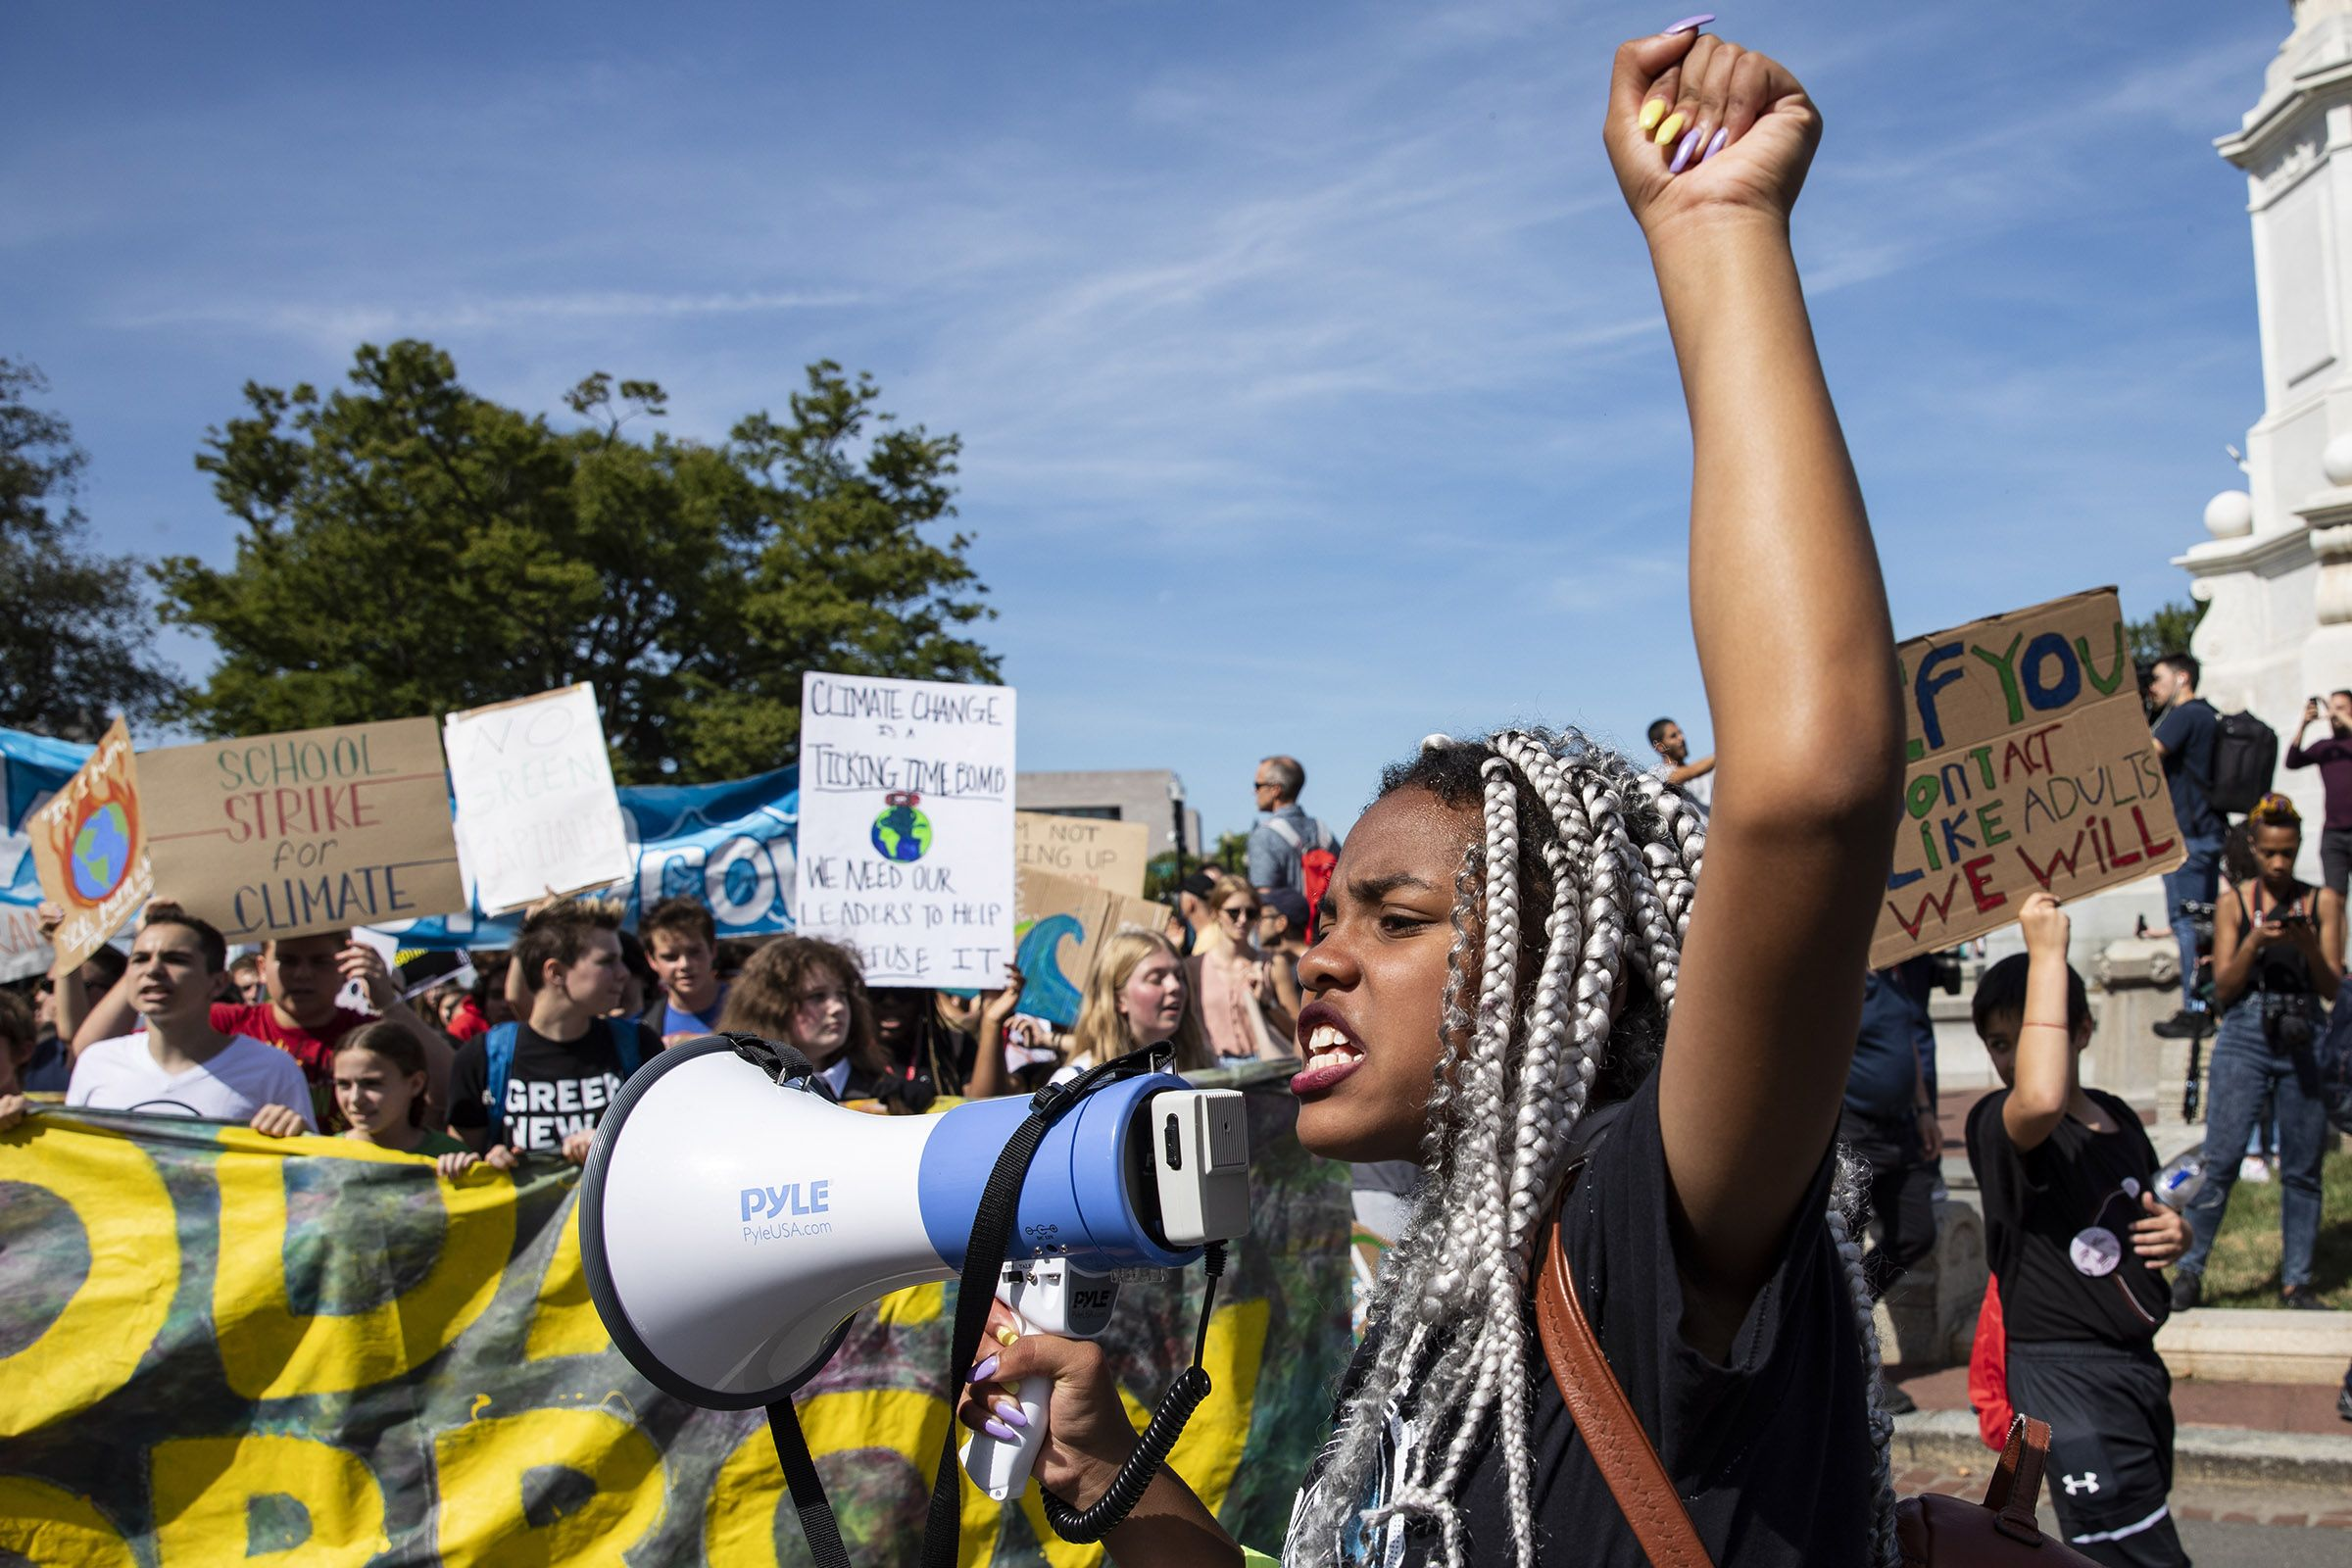 Global Climate Strike Greta Thunberg Students Lead Protest Time Climate Action Paris Climate Climates